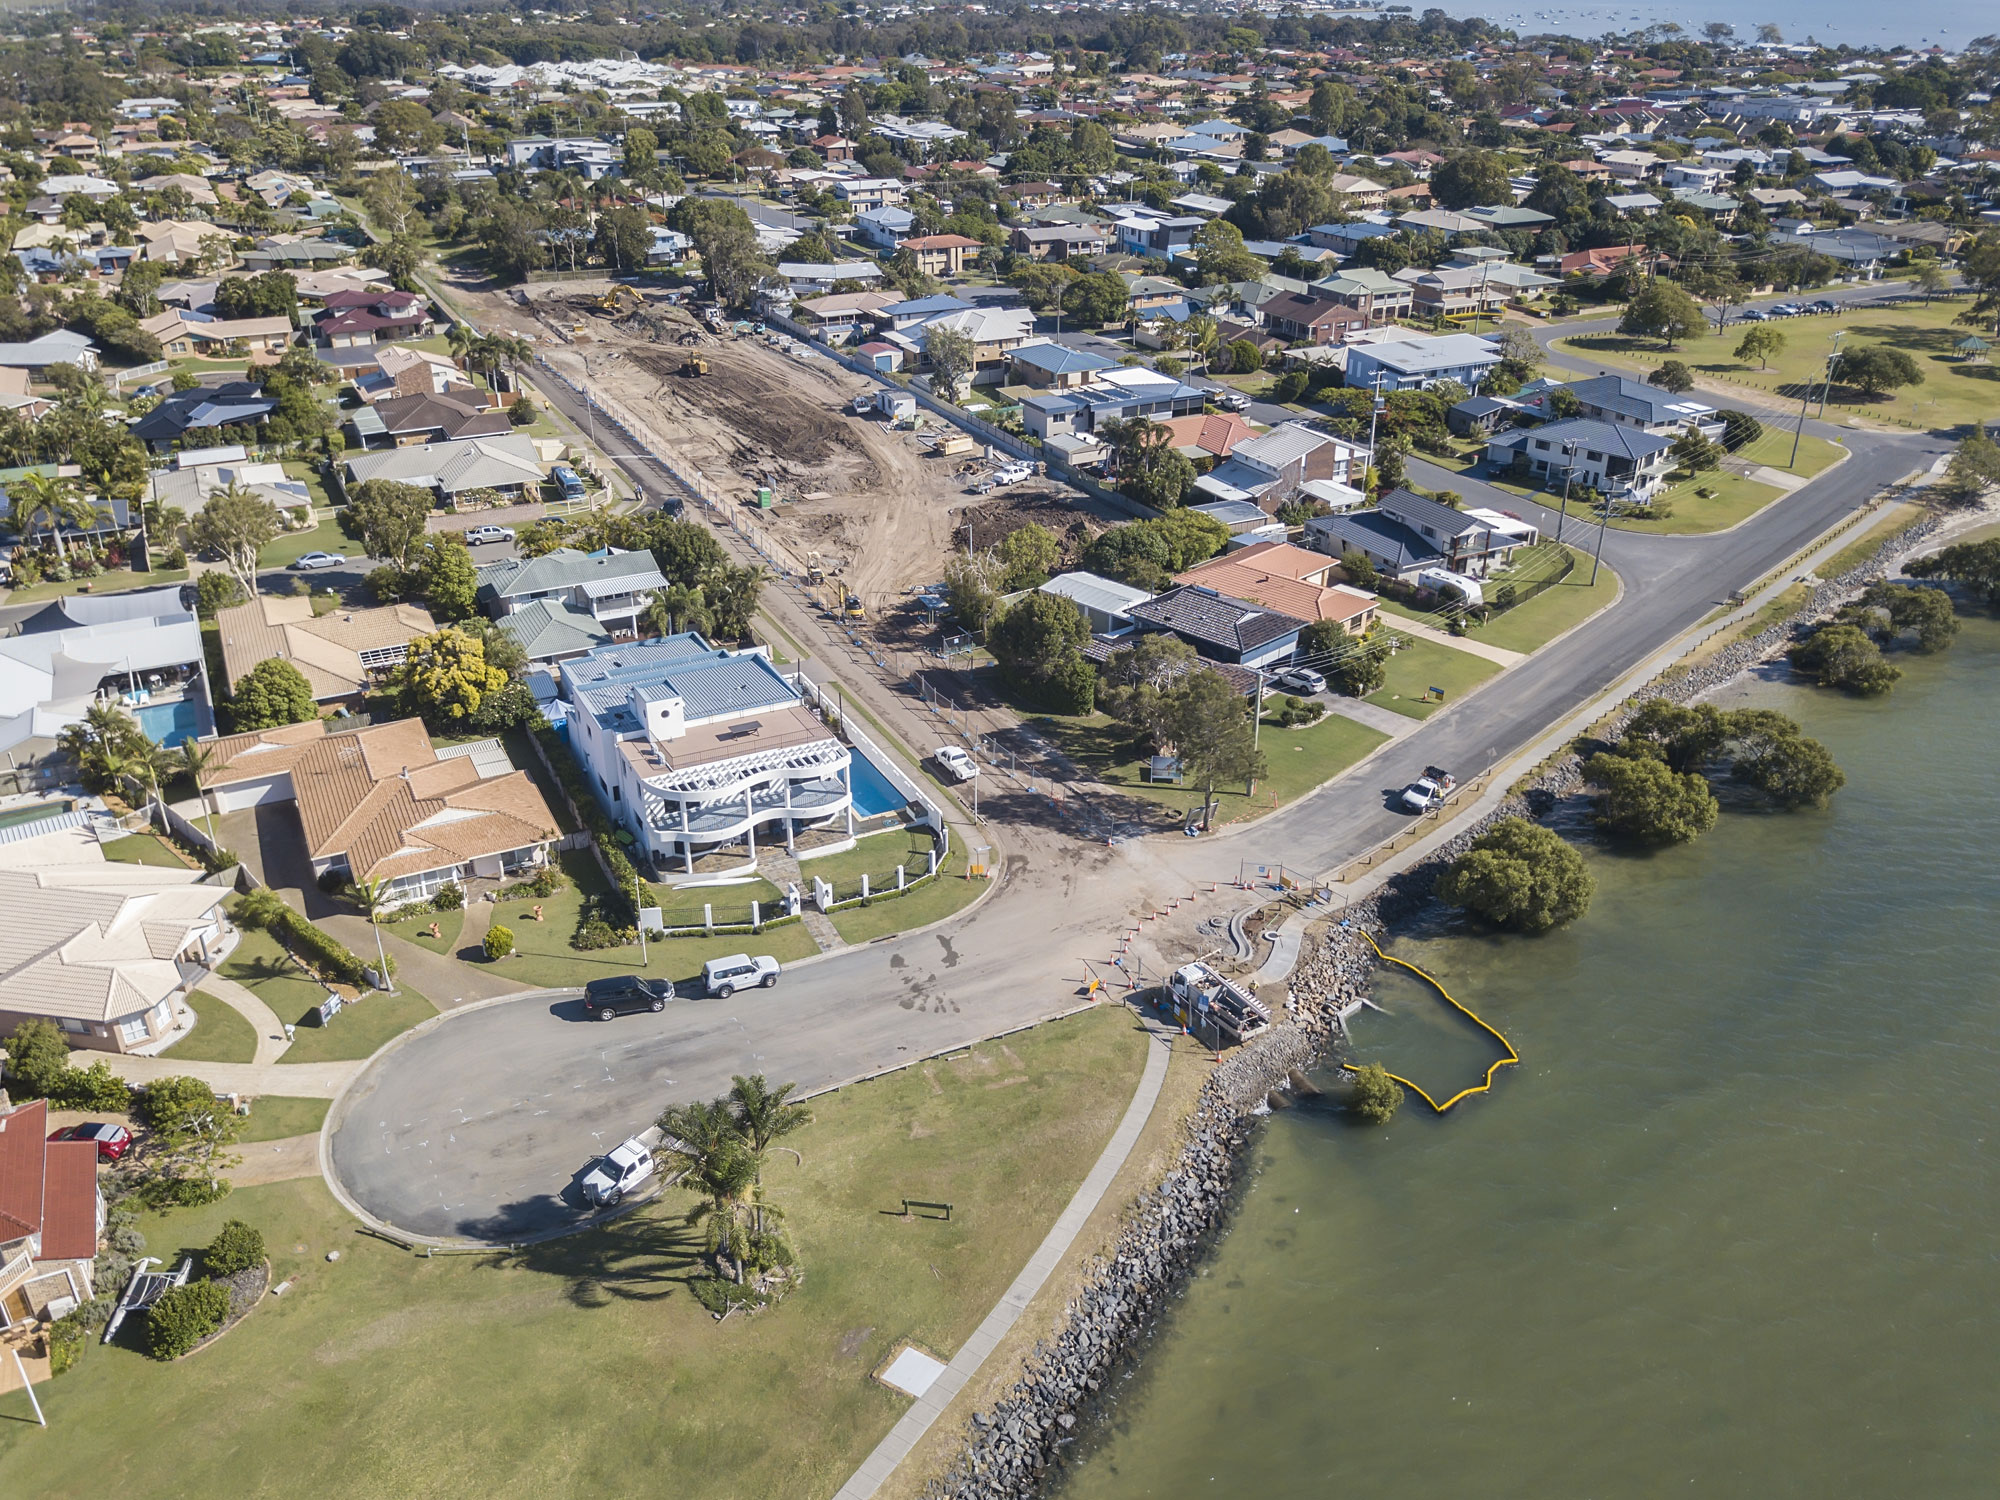 Victoria Point drone photography